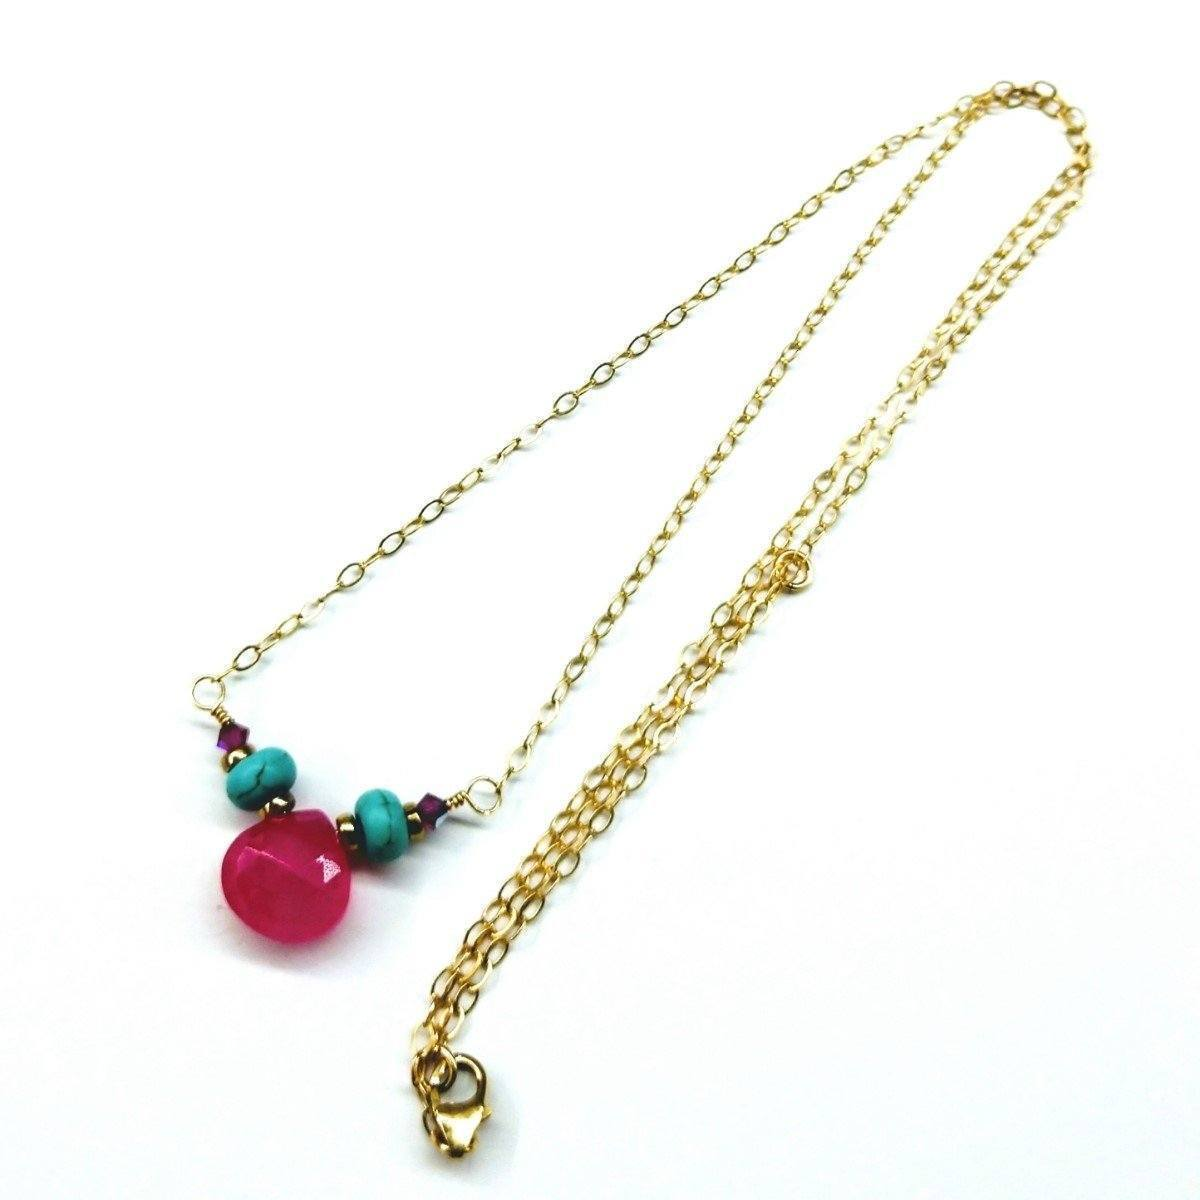 Gold Filled Turquoise And Pink Gemstone Drop Necklace